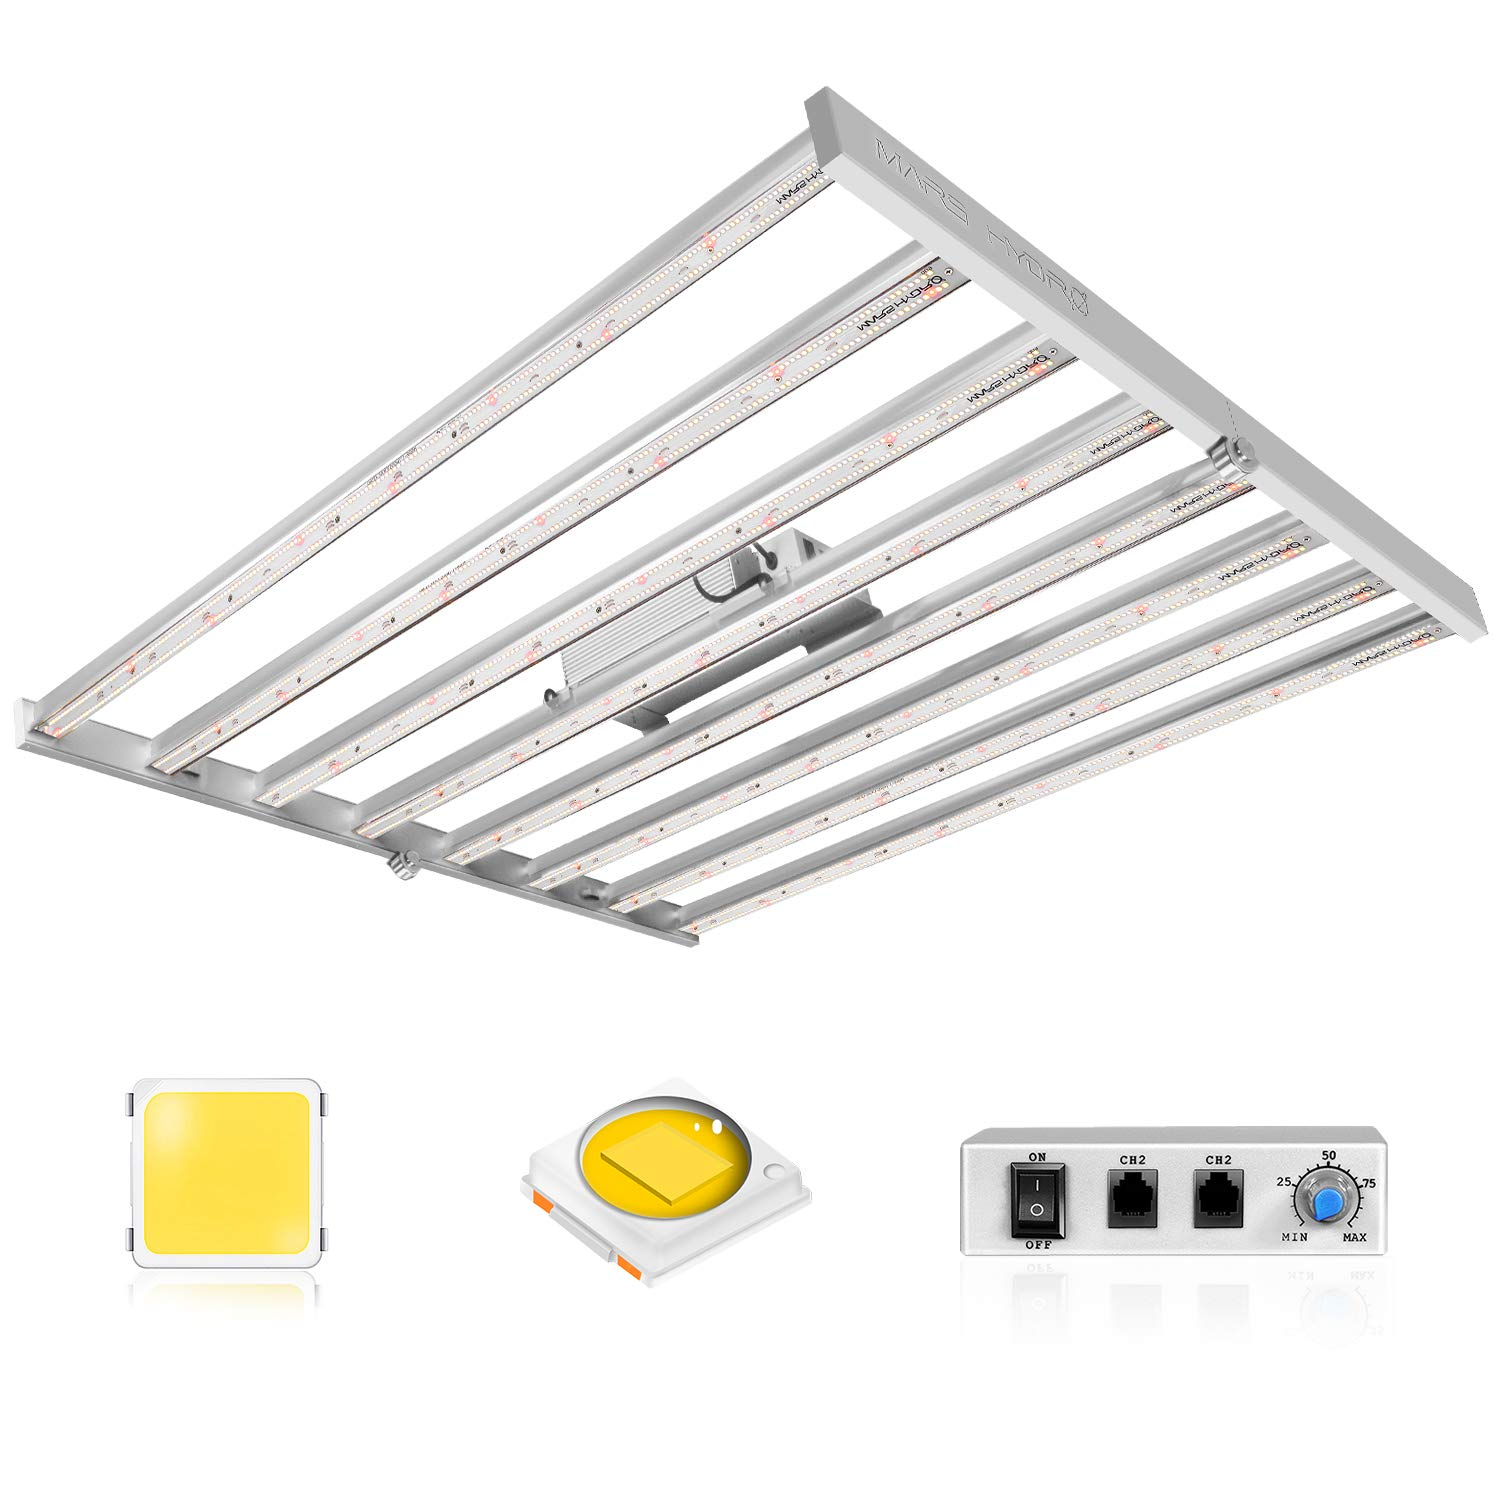 MARS HYDRO FC6500 LED Grow Light 5x5ft with 2688pcs Samsung LM301B Osram Diodes Inventronics Driver Upgraded Full Spectrum Commercial Growing Light for Plants Dimmable Daisy Chain 2.8 umol/J